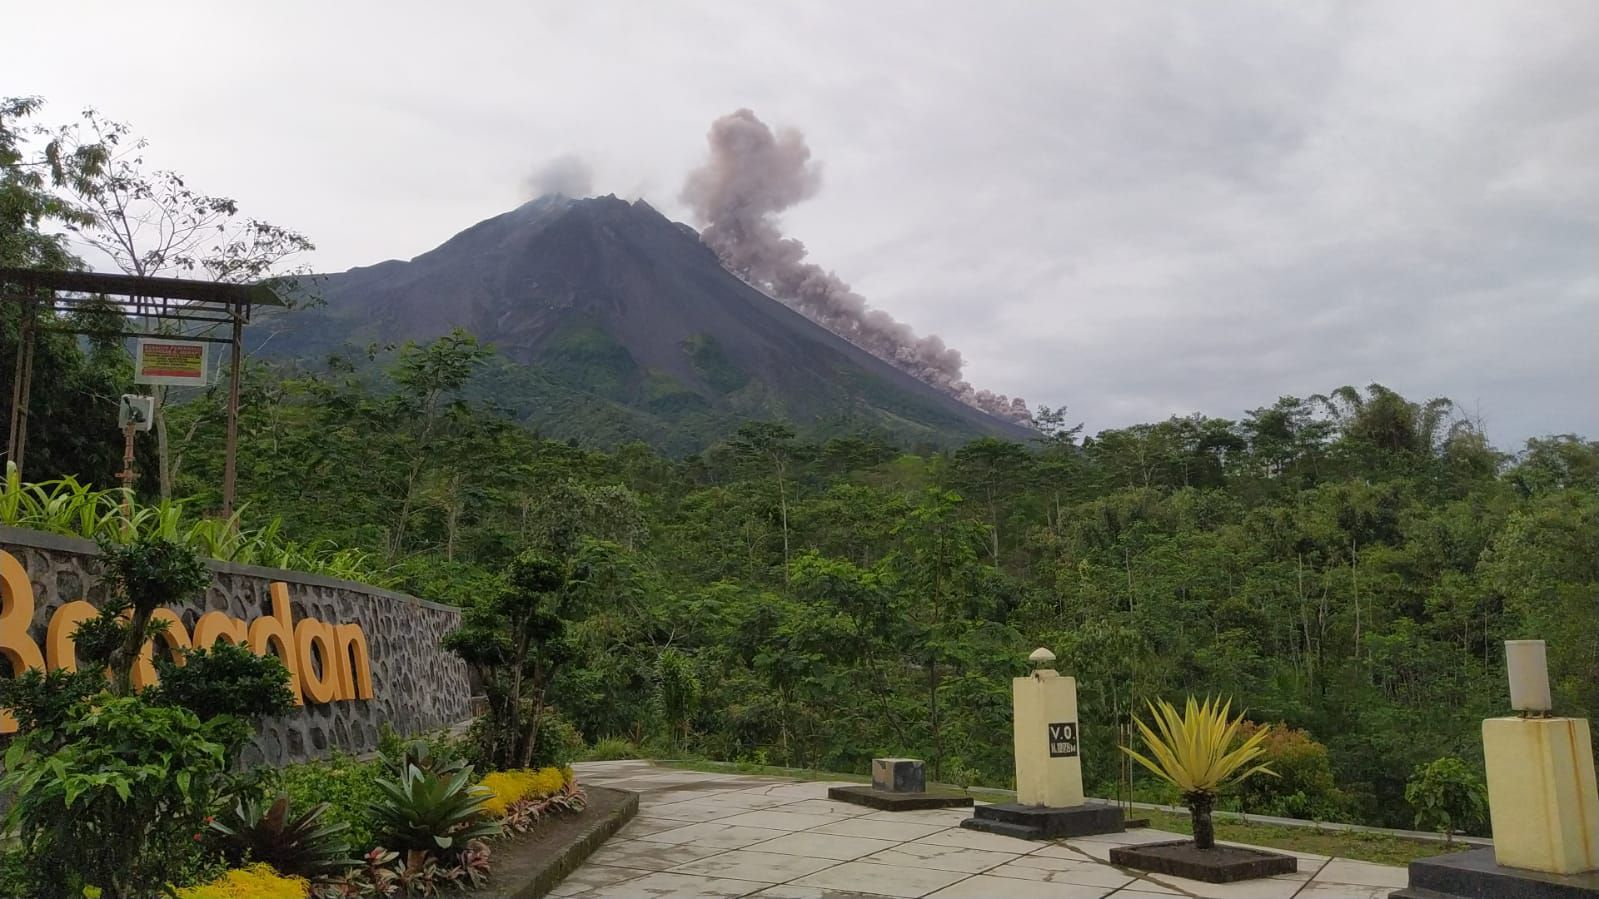 Merapi - June 17, 2021 at 7.10 WIB, a pyroclastic flow is moving over 2000 m. South West direction- Merapi observatory photo